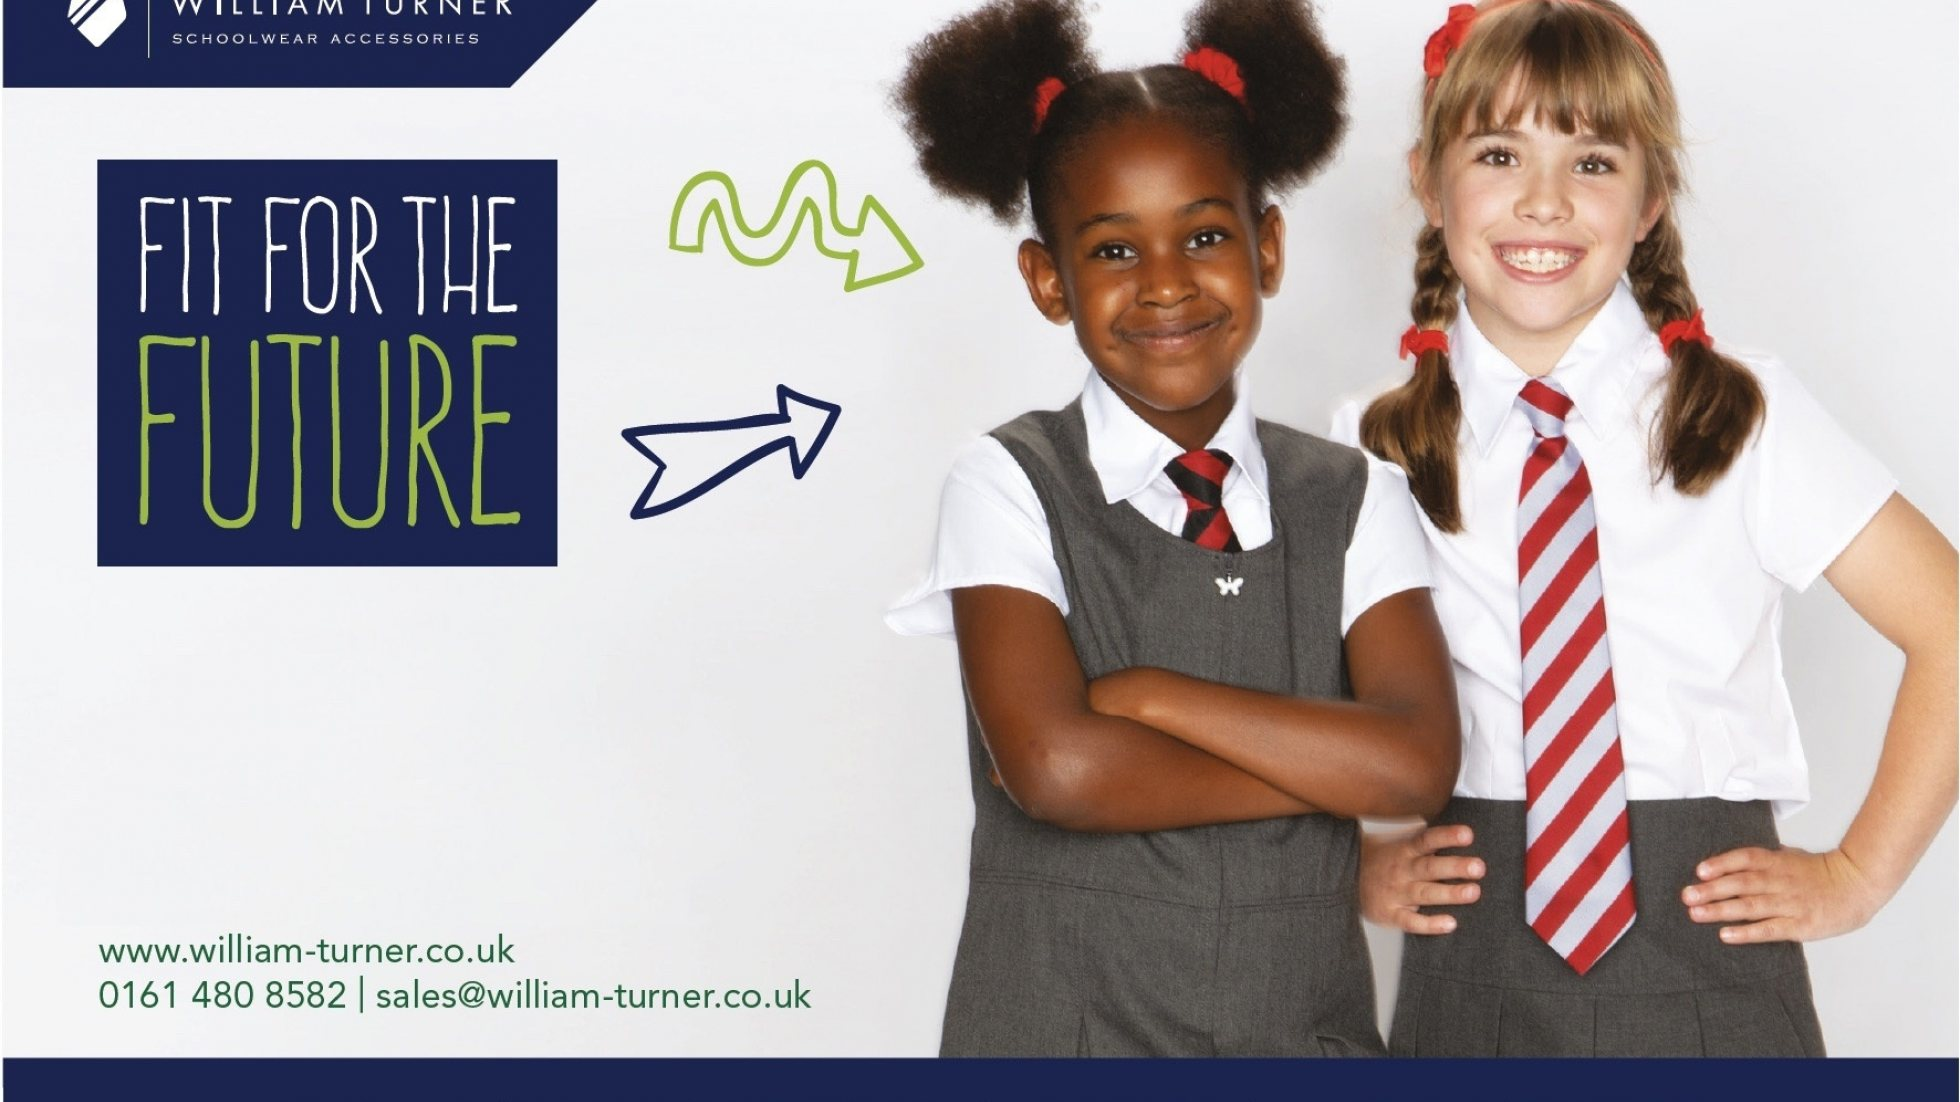 Designing a schoolwear campaign fit for the future